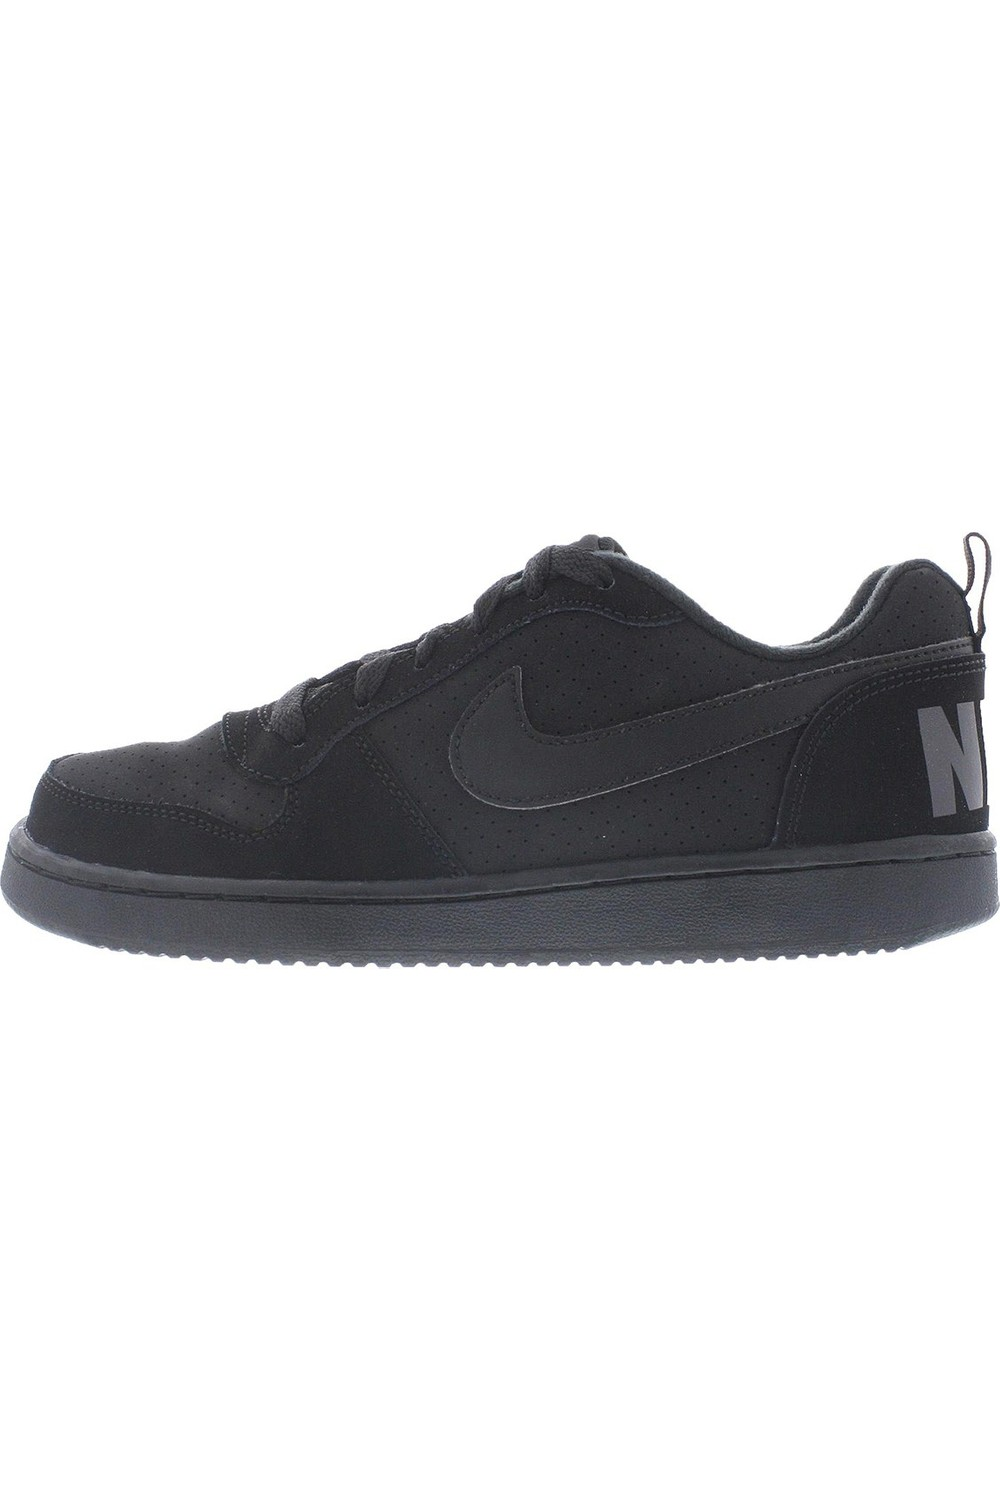 Nike Children's Sports Shoes 839985-001